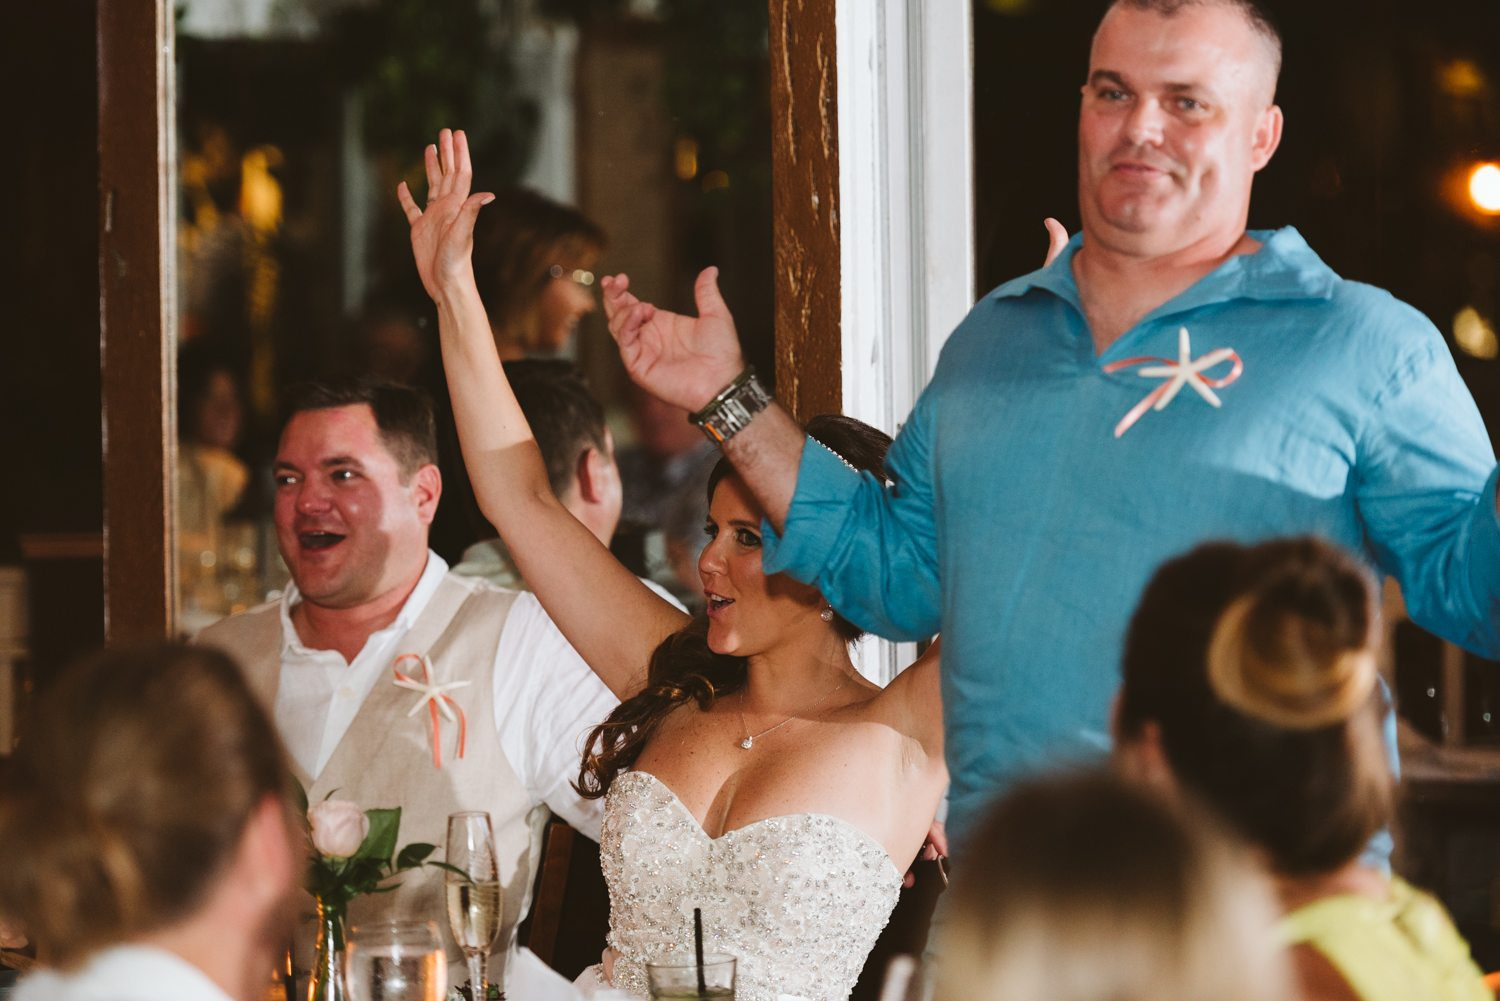 Erin Colin Fort Zachary Taylor Rooftop Cafe Key West Wedding Photographer 65 - Erin & Colin   Key West Wedding Photographer   Fort Zachary Taylor